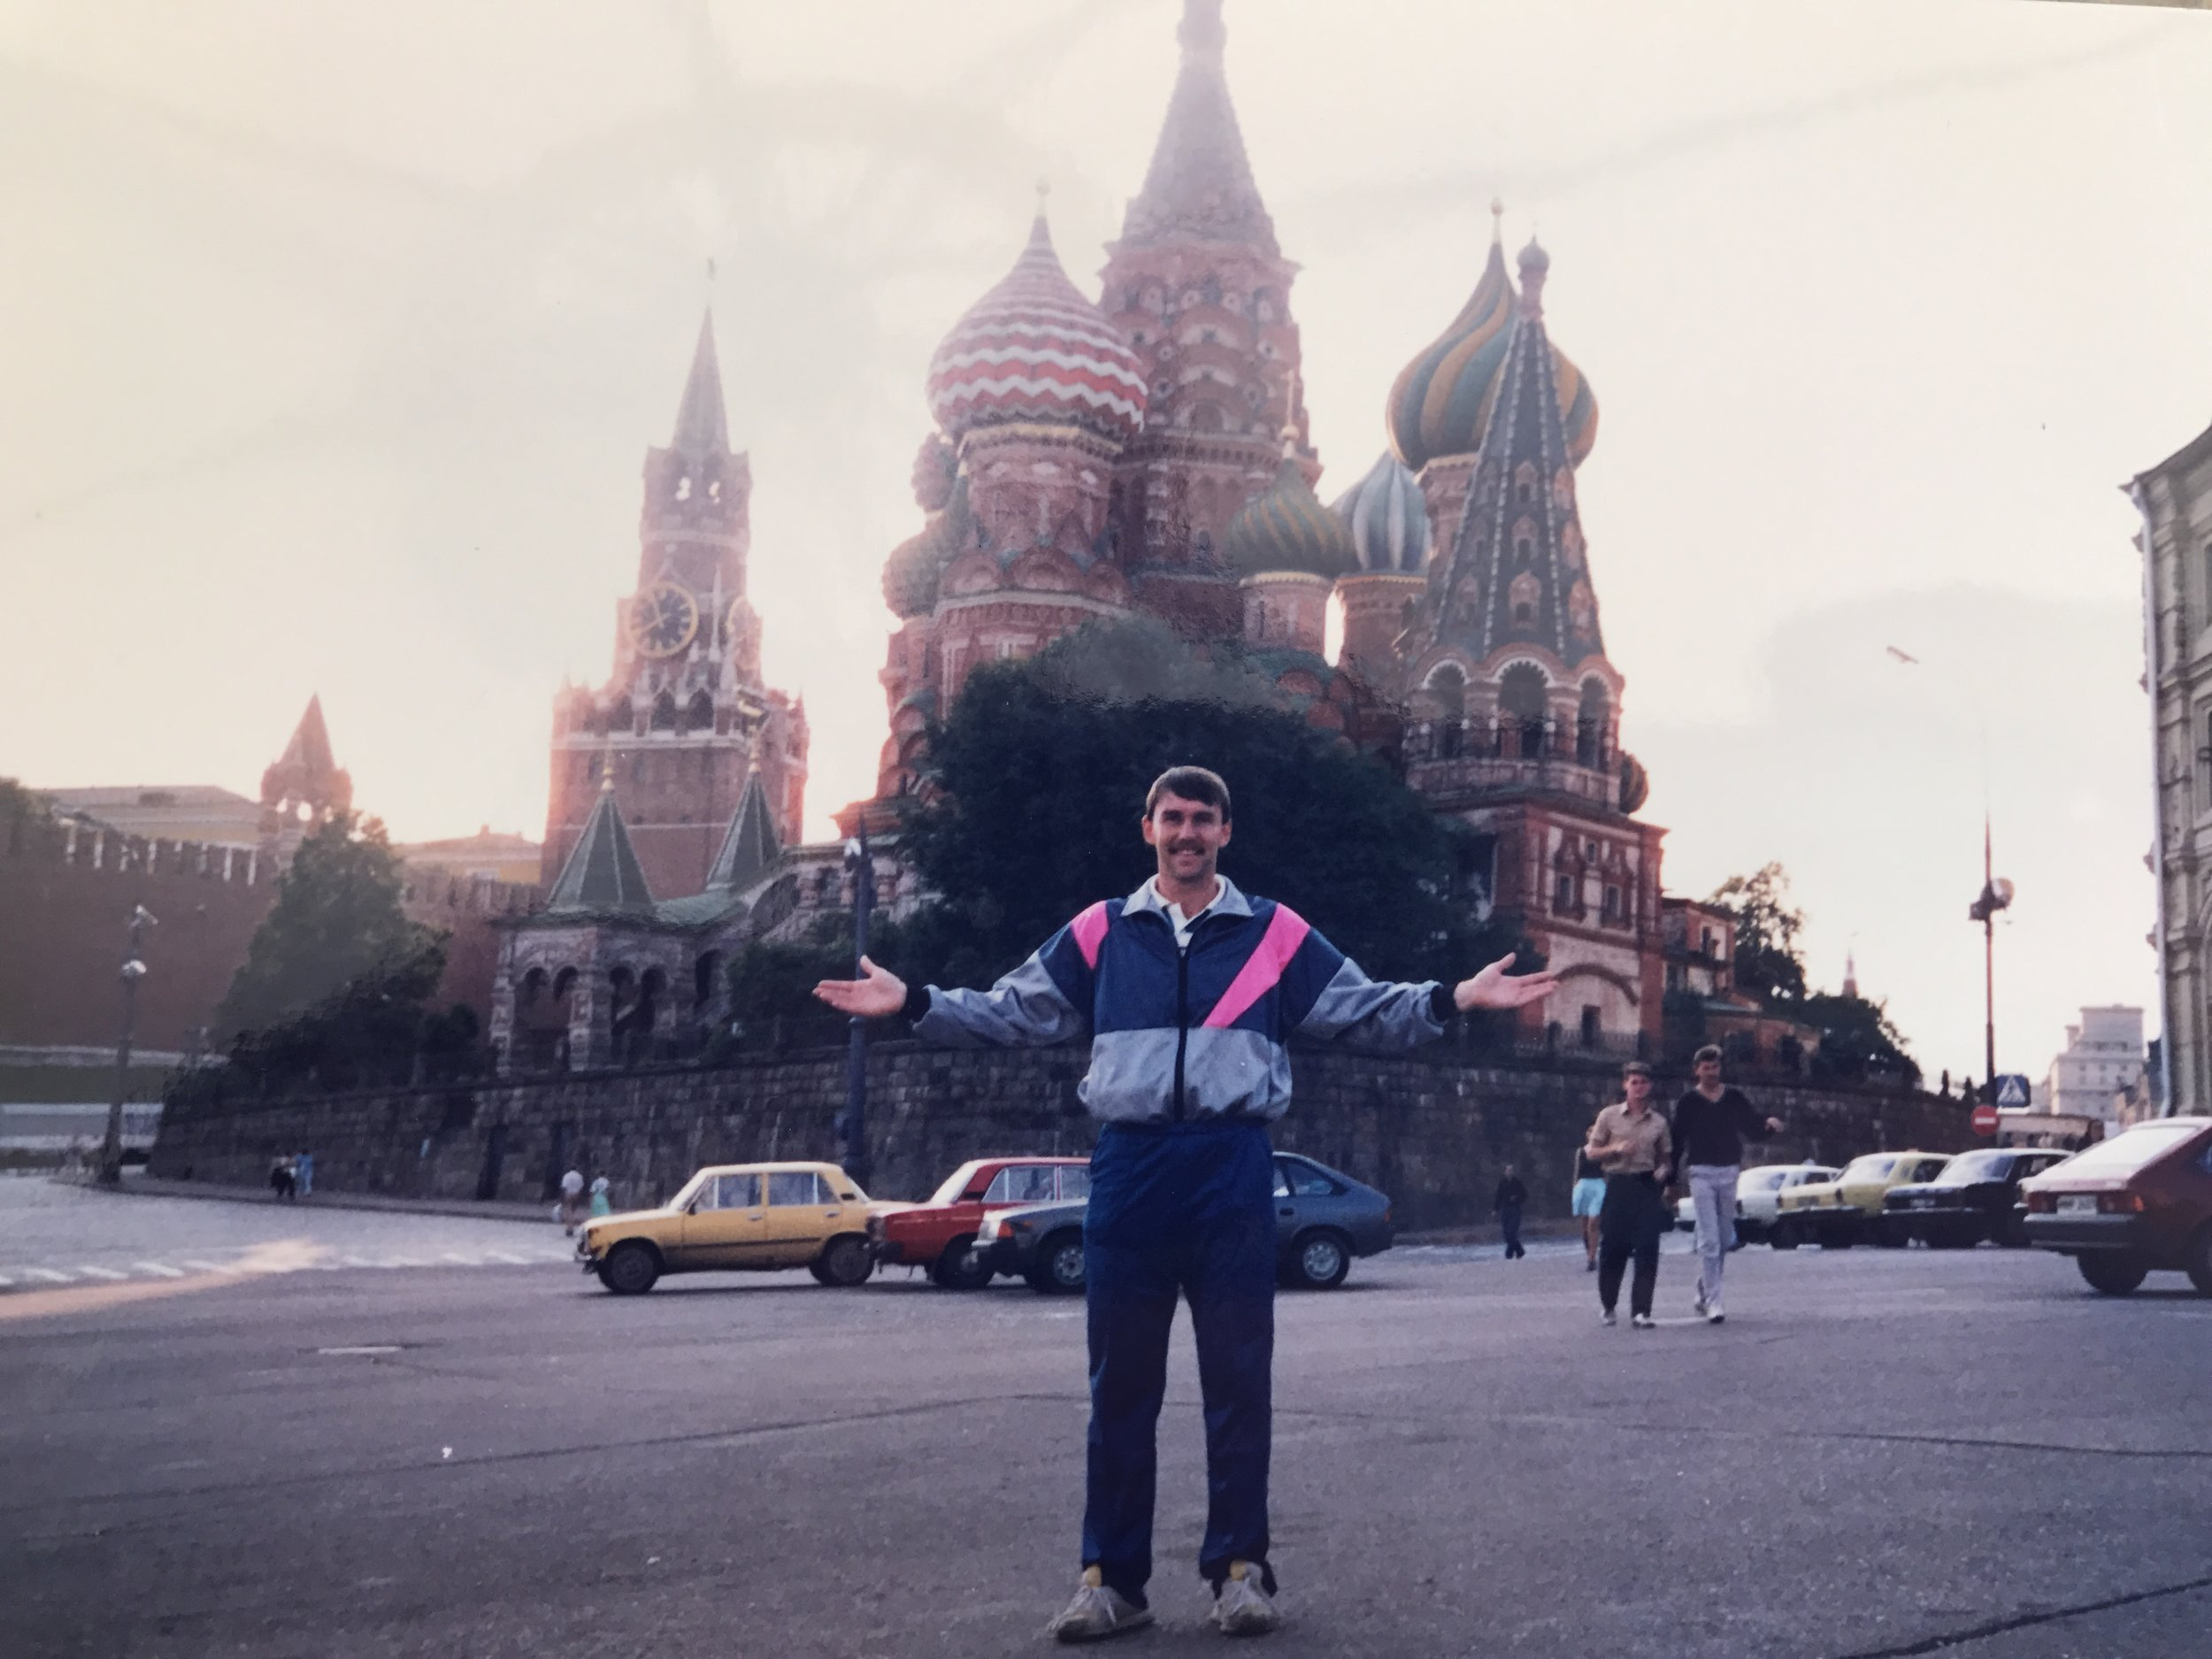 Taking in the culture and famous landmark St.Basil's Cathedral, Red Square,in Moscow, Russia, 1990 on tour with Wigan Athletic. Club tracksuit was in style back then !